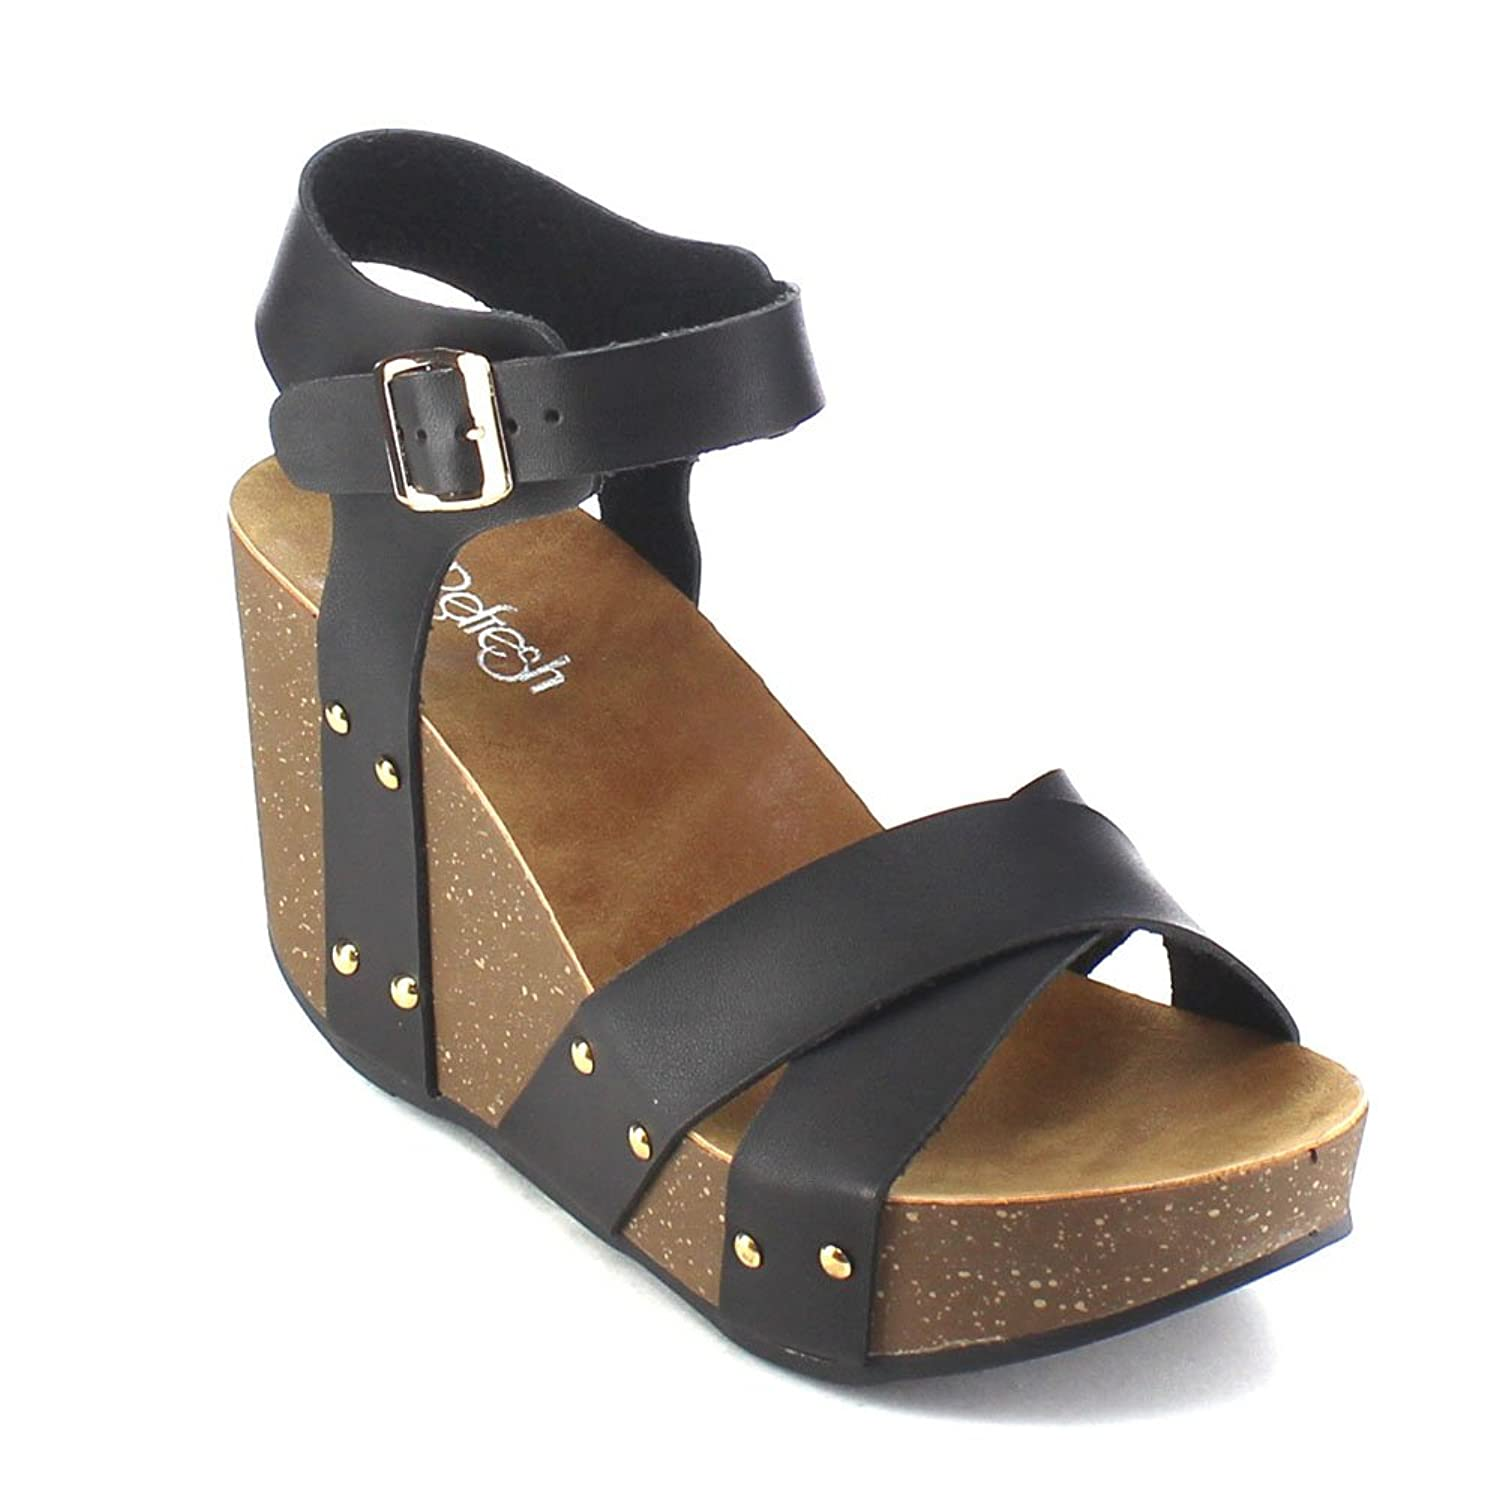 wedges heels comfortable high heeled super gettyimages most for style shoes fashion comfy comforter women